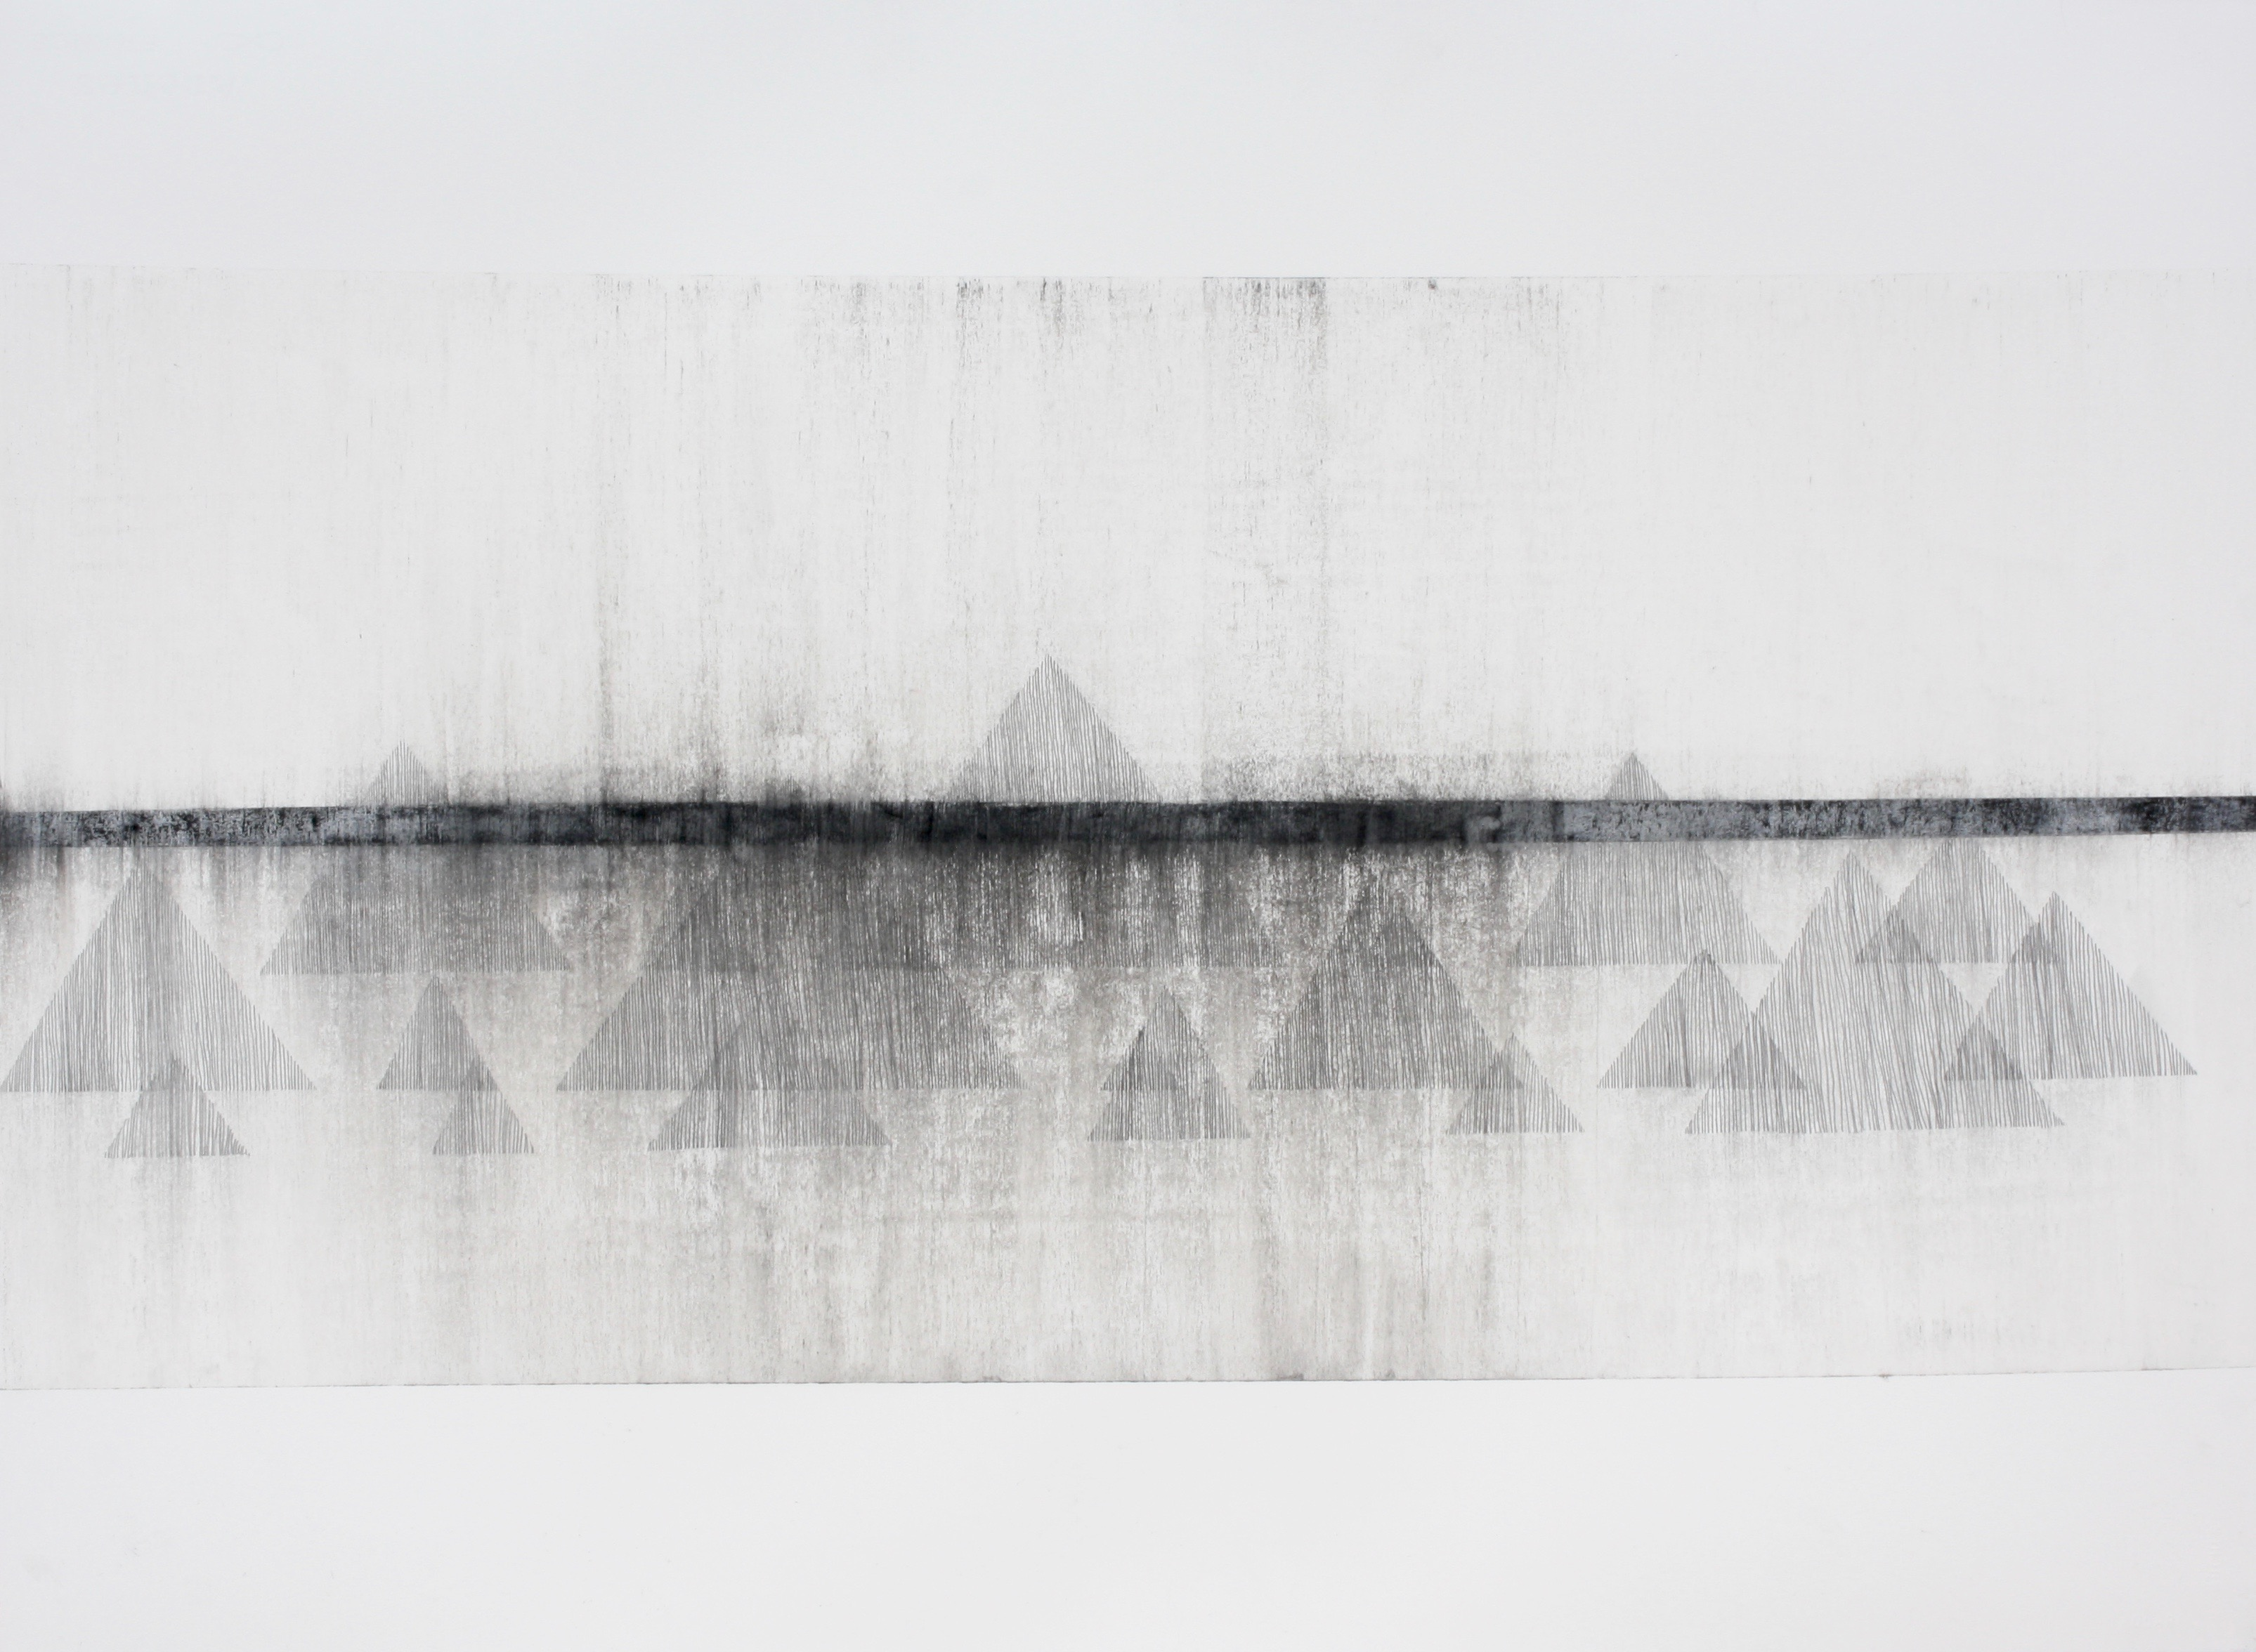 Robinson_Fiona Debussy La Cathdrale Engloutie/Sunken Cathedral #4. Graphite charcoal and mixed media 76 x 56cms